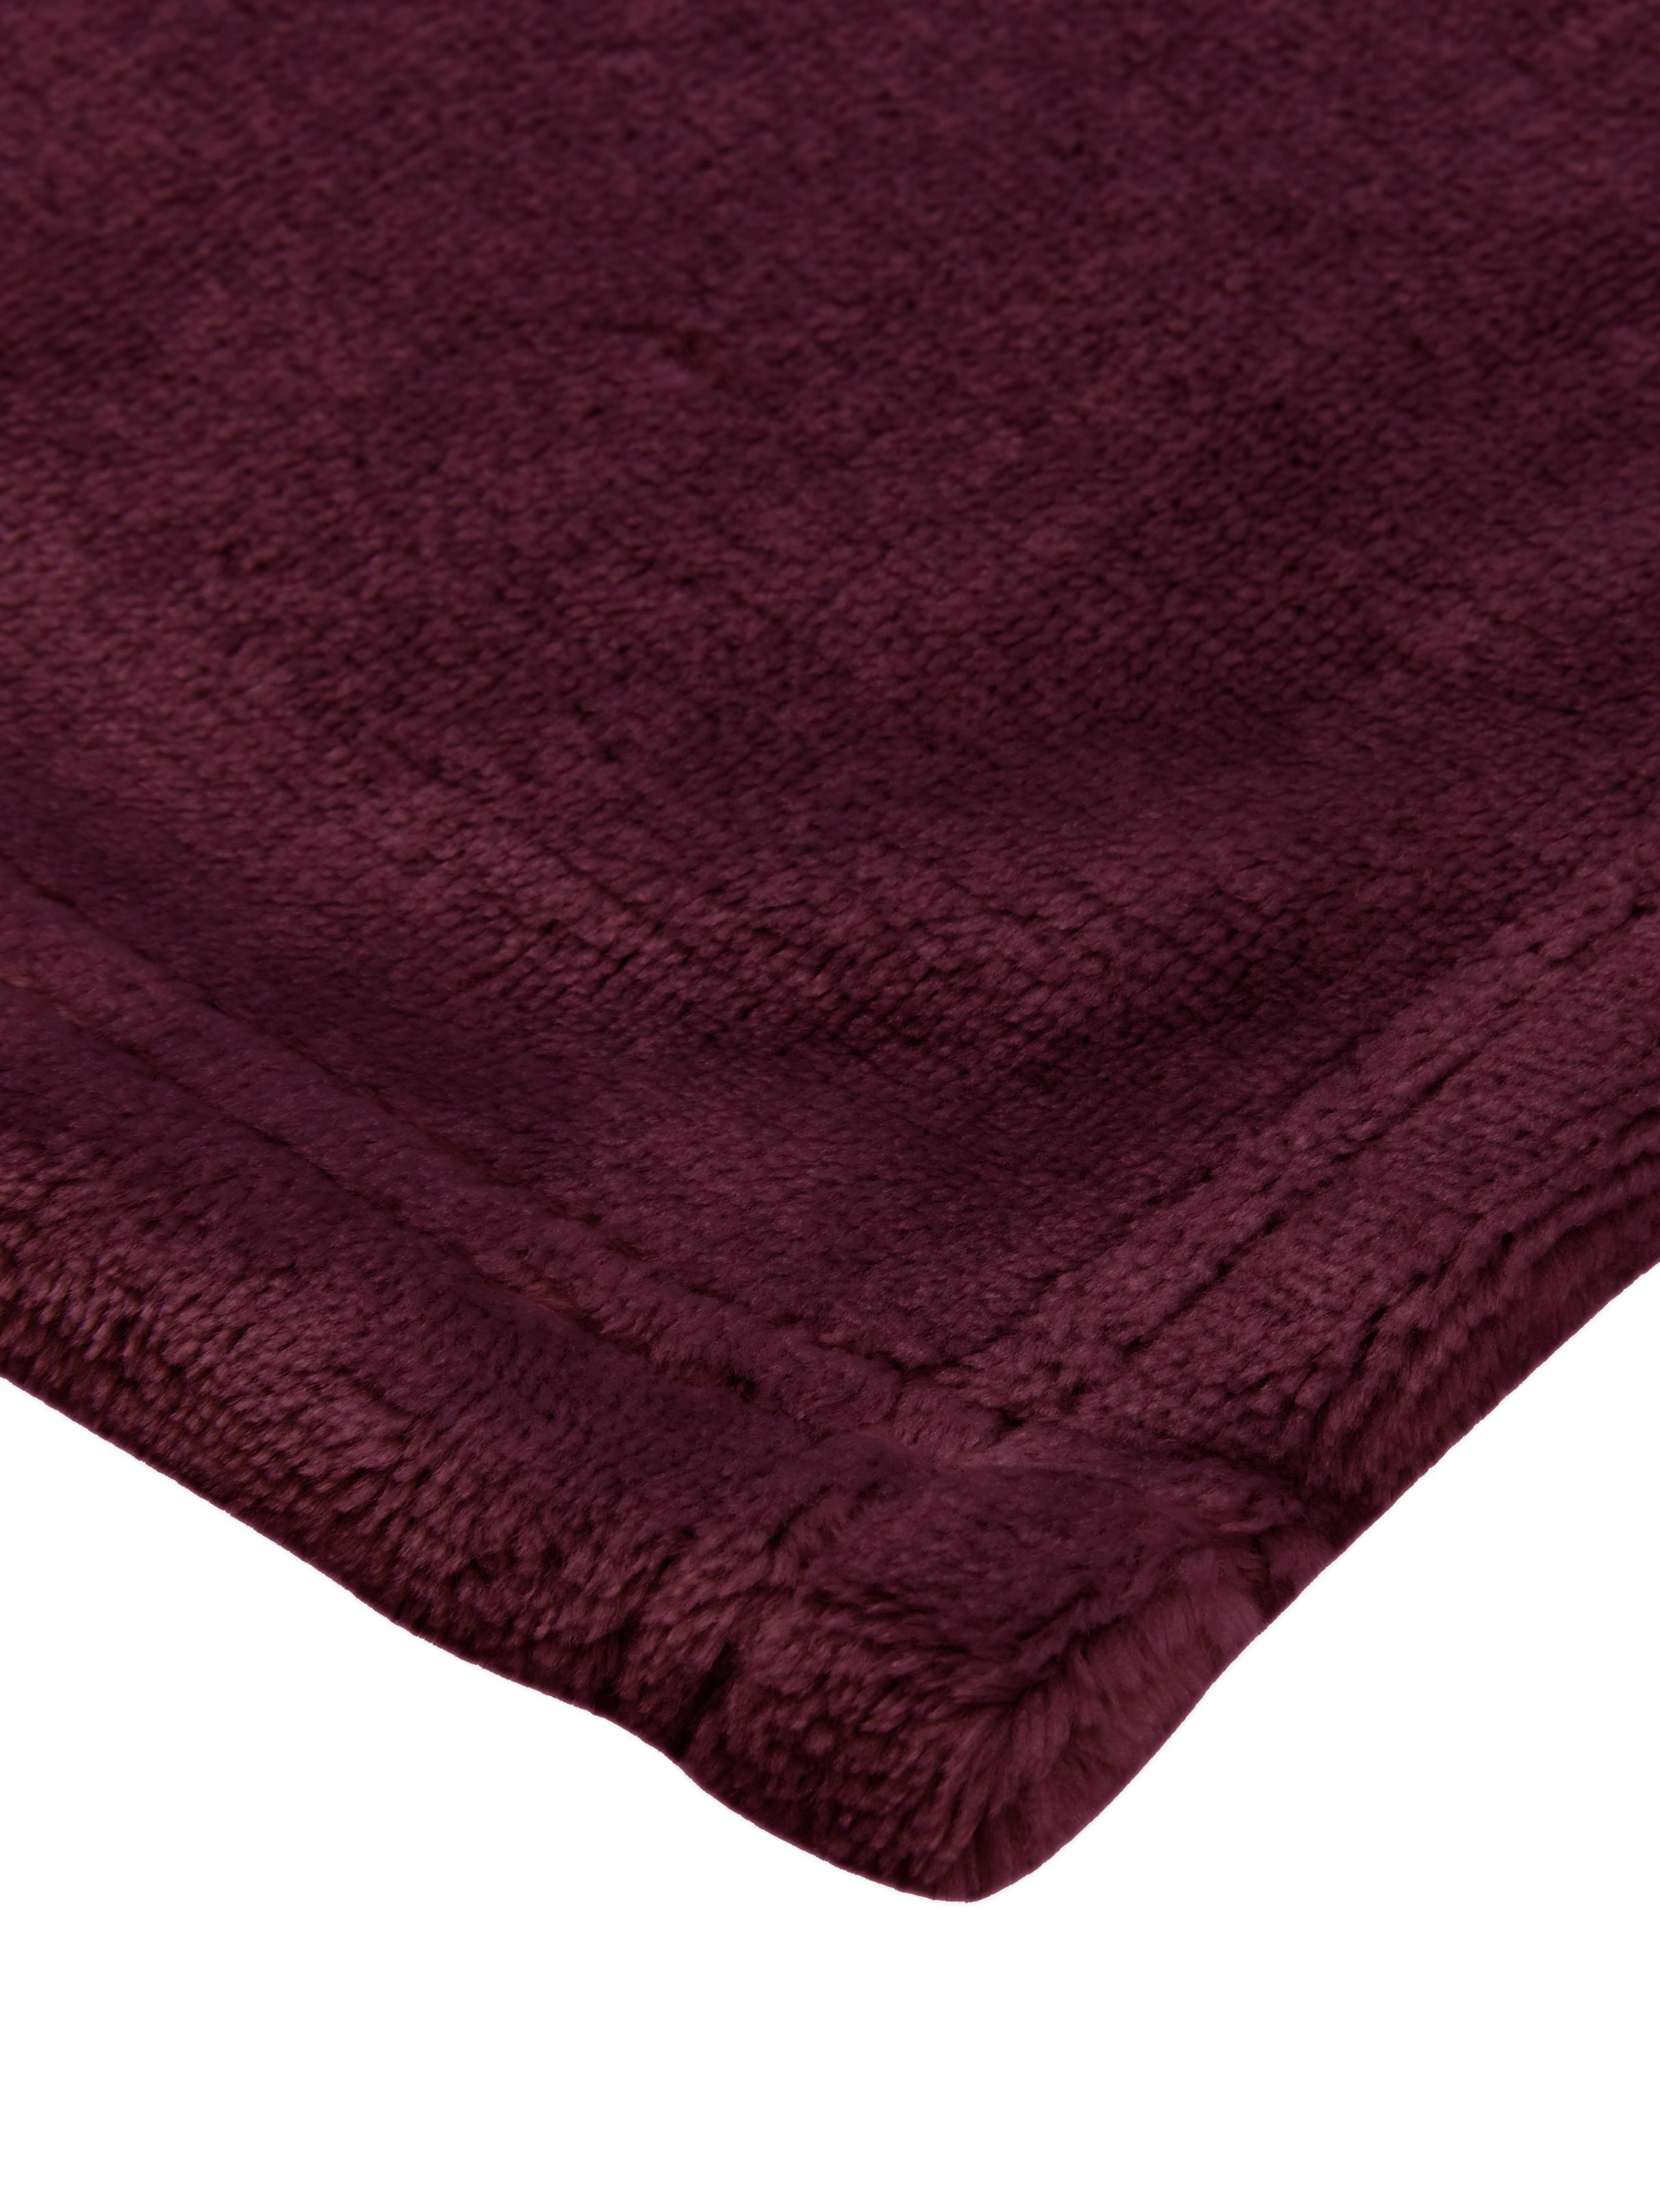 Weiches Fleece-Plaid Doudou in Weinrot, 100% Polyester, Weinrot, 130 x 160 cm